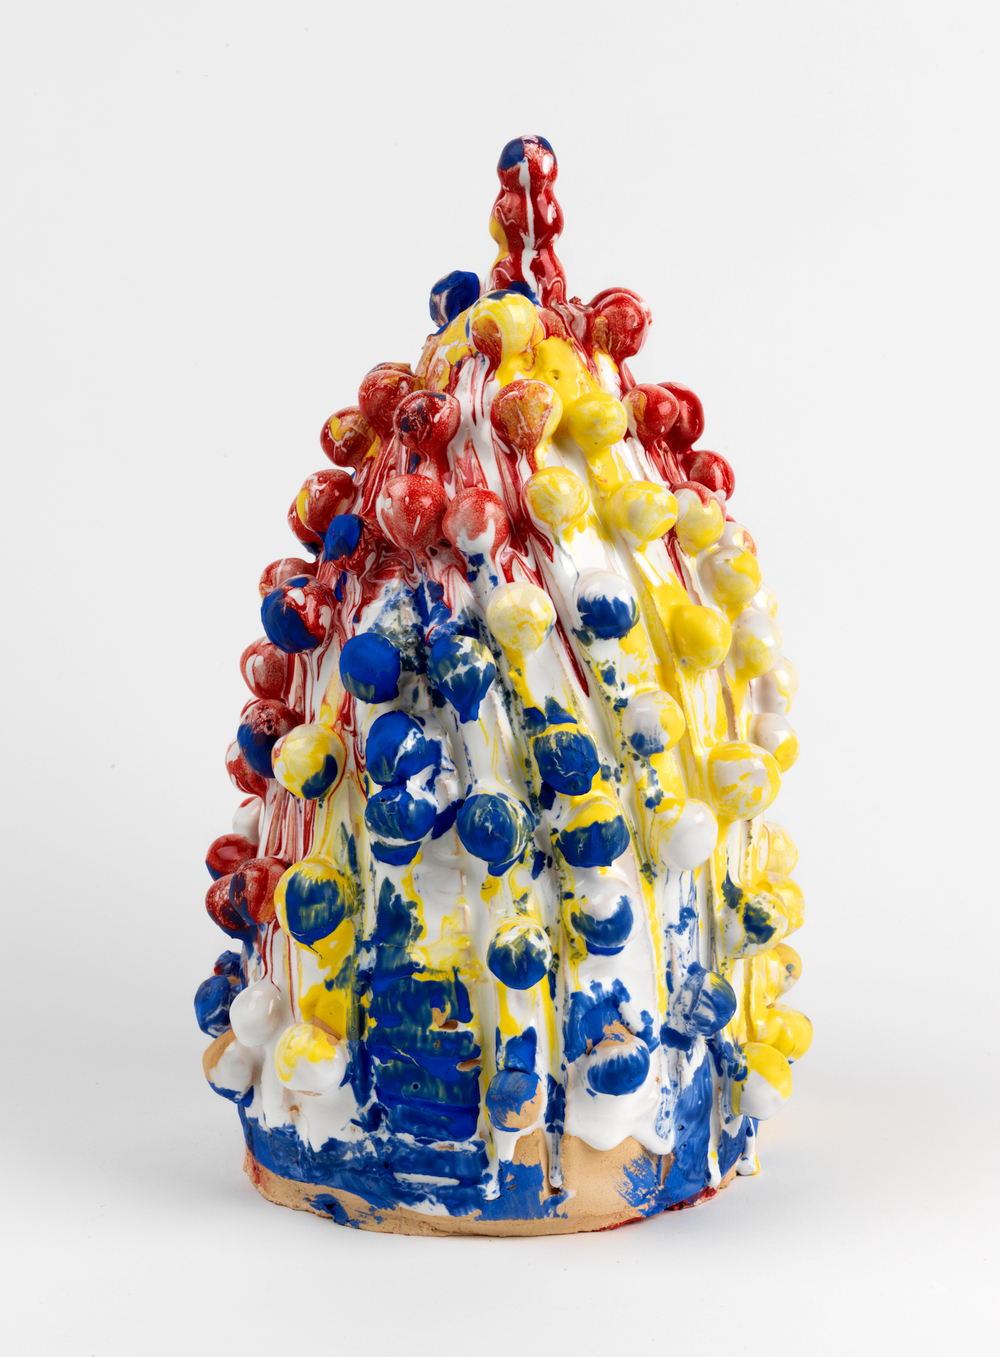 William J. O'Brien  Untitled  2011 Glazed ceramic 16h x 9 ½w x 10d in WOB842